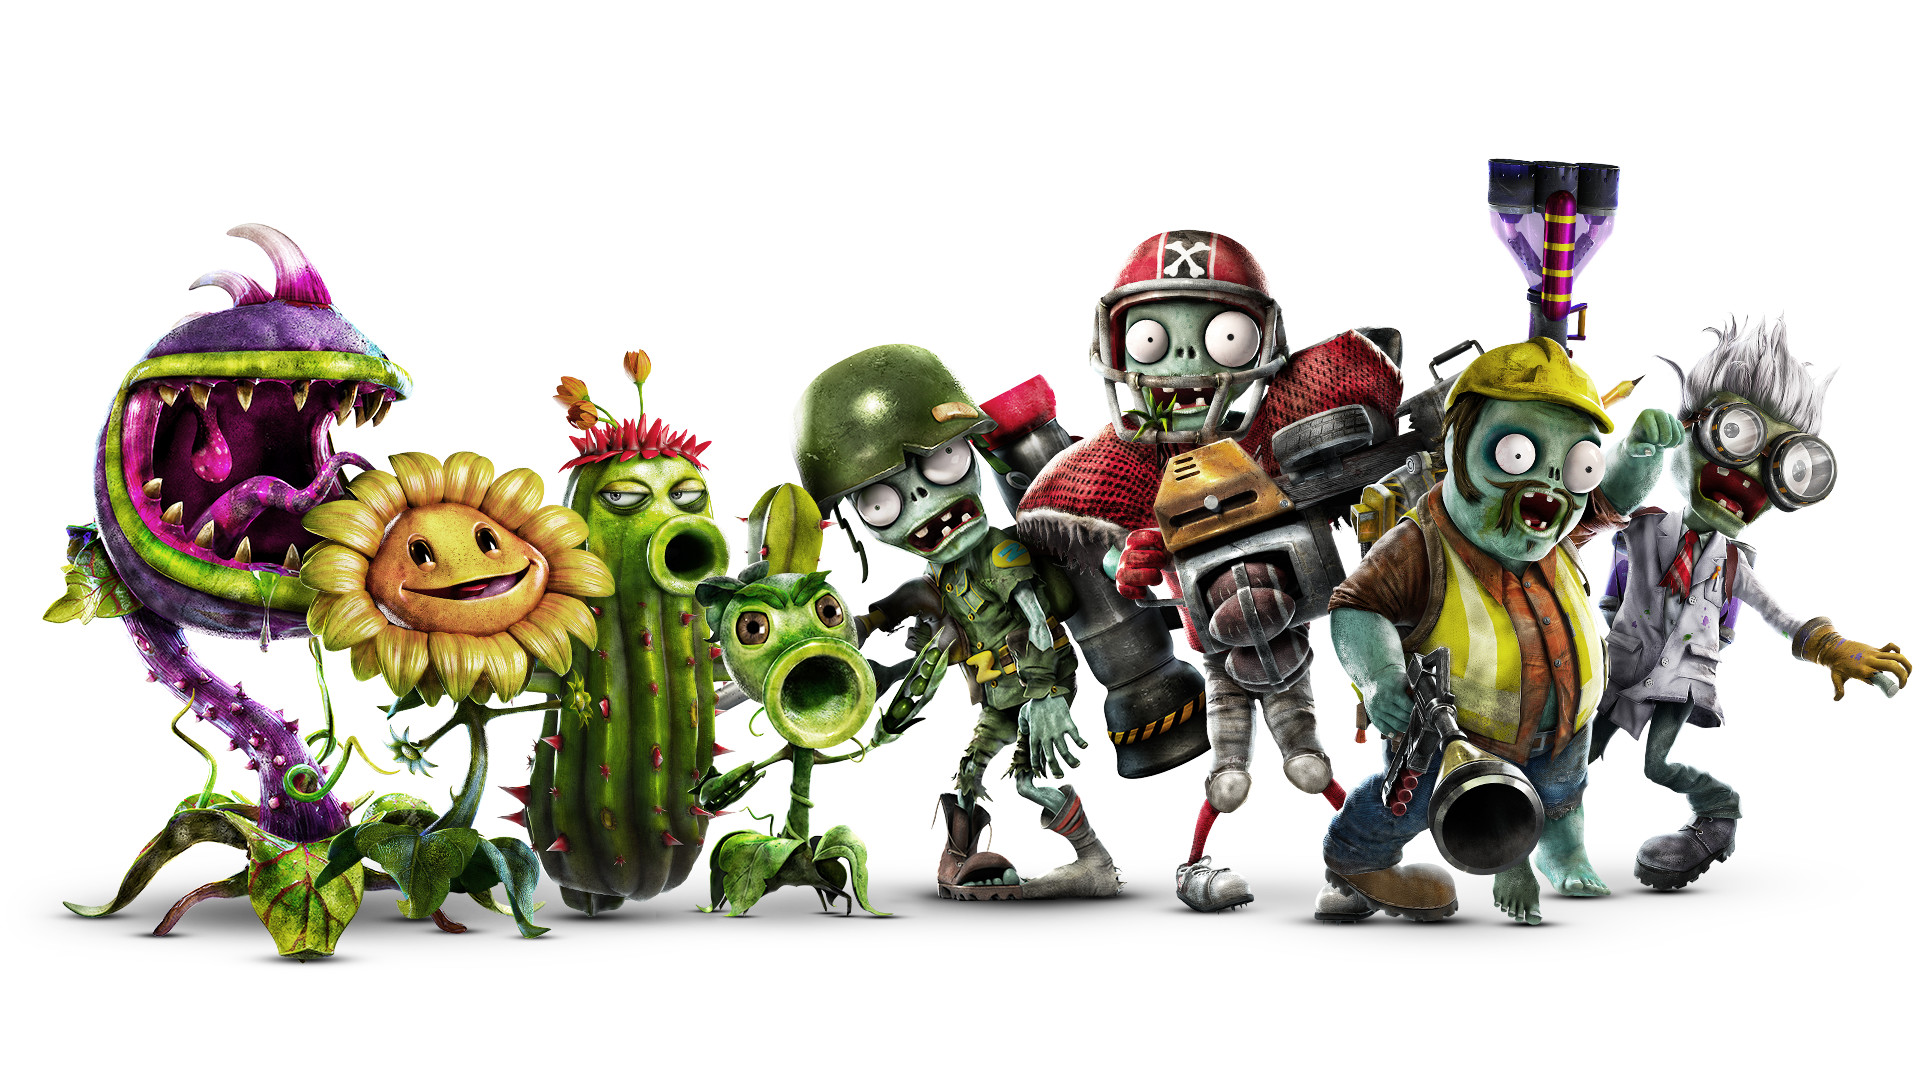 Plants Vs Zombies Garden Warfare 2 Faq Zu Den Neuen Charakteren